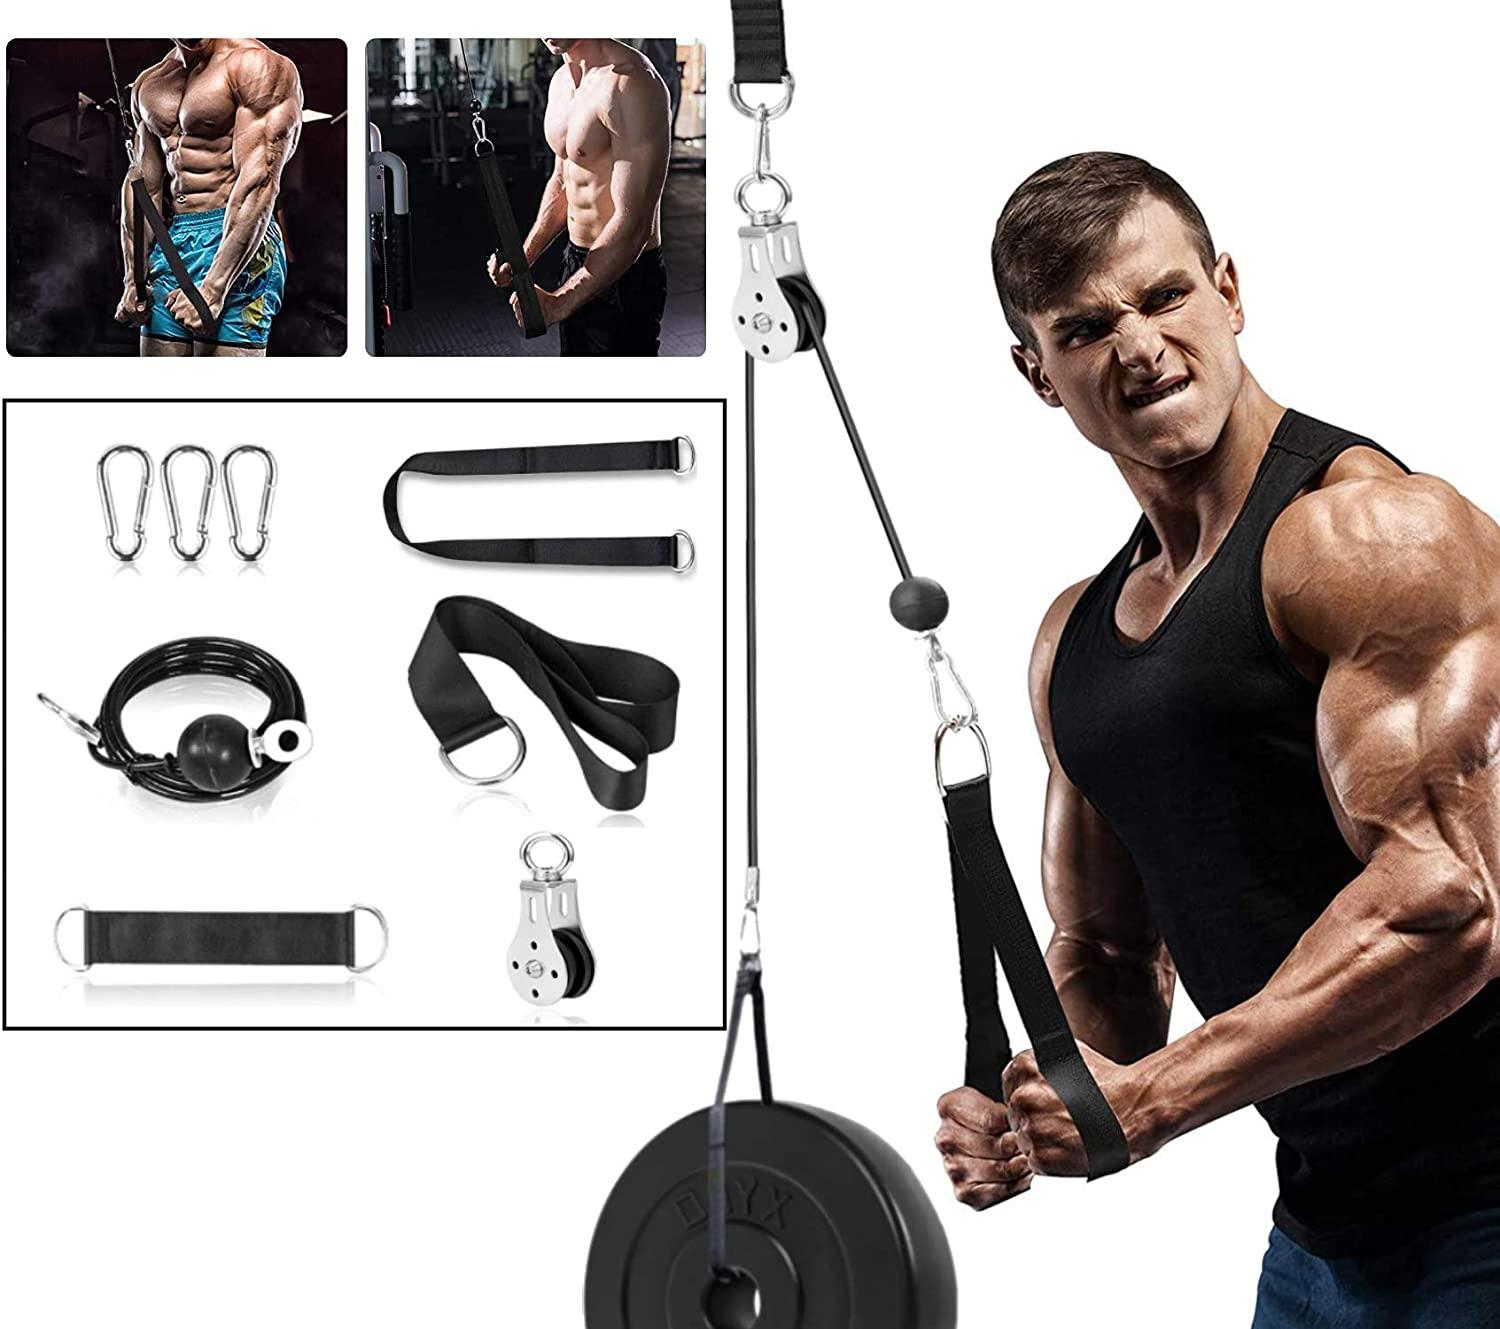 Nobranded Fitness Pulley Cable System Home Gym Workout fitness equipment high pull-down arm strength triceps machine DIY exercise pulley Tricep with wire rope nylon rope Accessorie 2M//78.7in